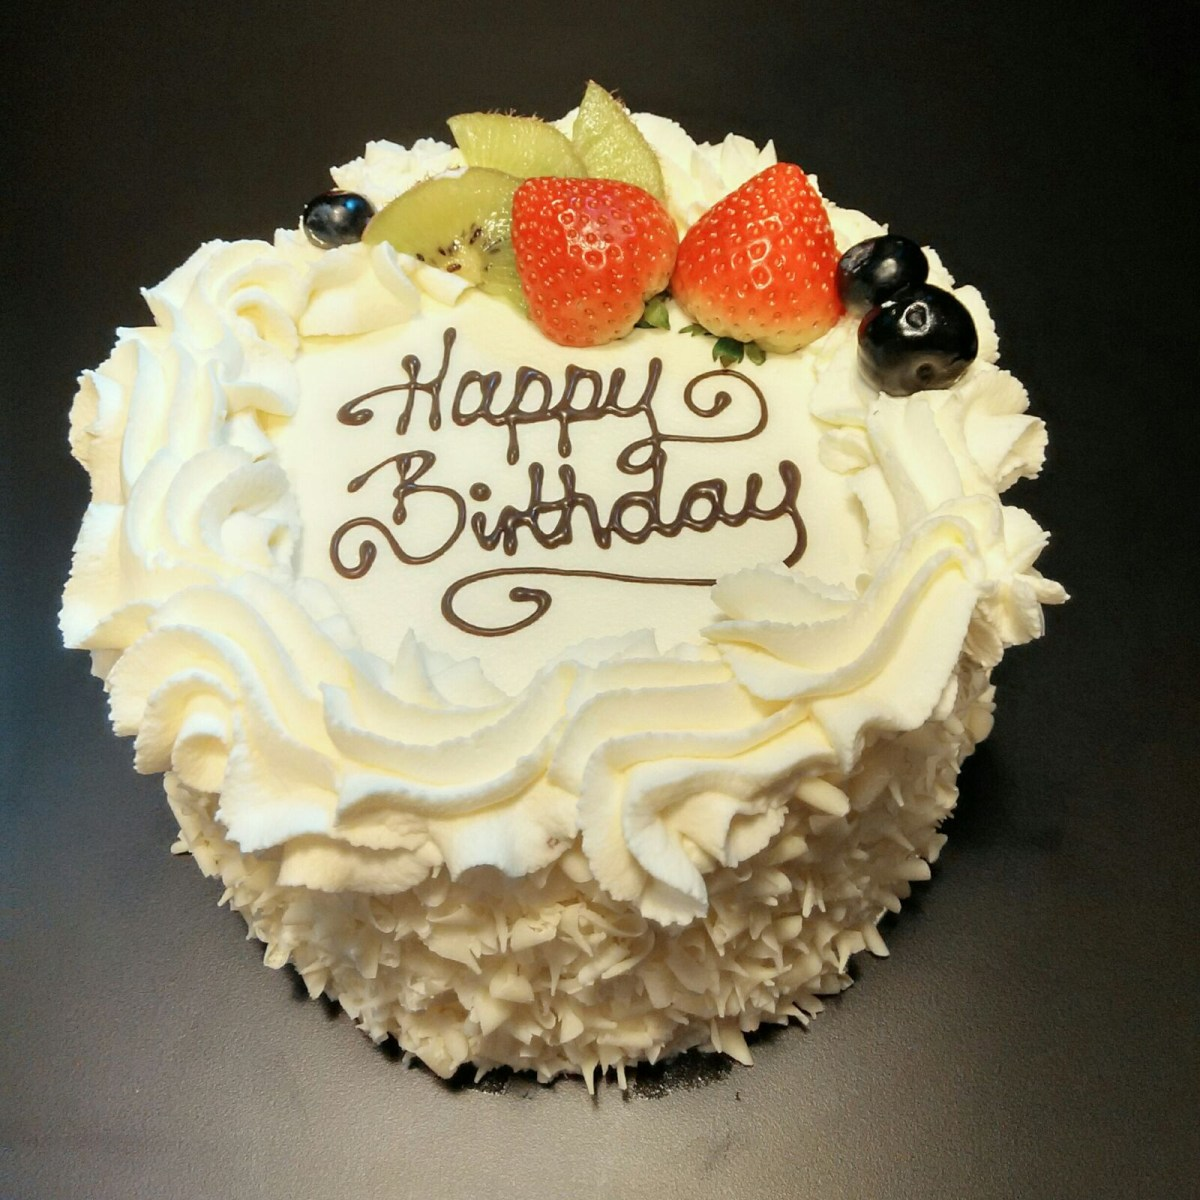 21+ Elegant Image of Cakes For Birthday